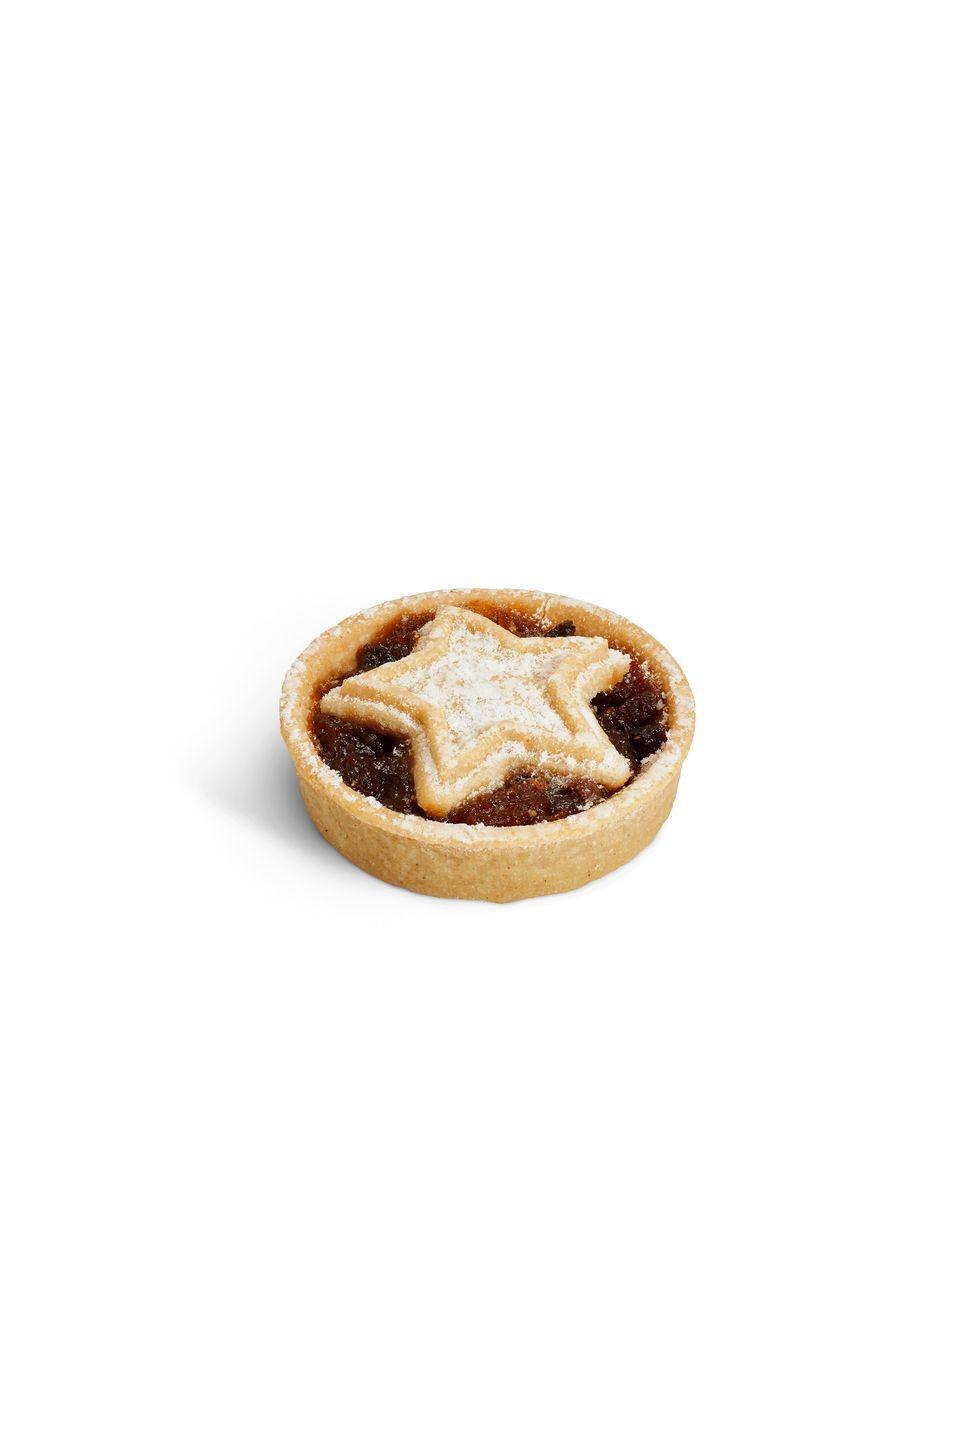 "<p><strong>Overall score: 73/100</strong></p><p>This year's best gluten-free mince pie boasts a decorative star design, dusted with icing sugar. Featuring a soft, melt-in-the-mouth pastry, the mince pie's succulent currants are paired with a hint of spice for a traditional finish, while a zingy, mixed peel flavour comes through in the filling. The gentle, fruity aroma has a hint of citrus from the lemon and orange peel. </p><p><strong><a class=""link rapid-noclick-resp"" href=""https://www.costa.co.uk/menu/"" rel=""nofollow noopener"" target=""_blank"" data-ylk=""slk:AVAILABLE IN STORE ONLY"">AVAILABLE IN STORE ONLY</a> Costa, £2 for 80g</strong> <strong>(serves 1)</strong></p>"